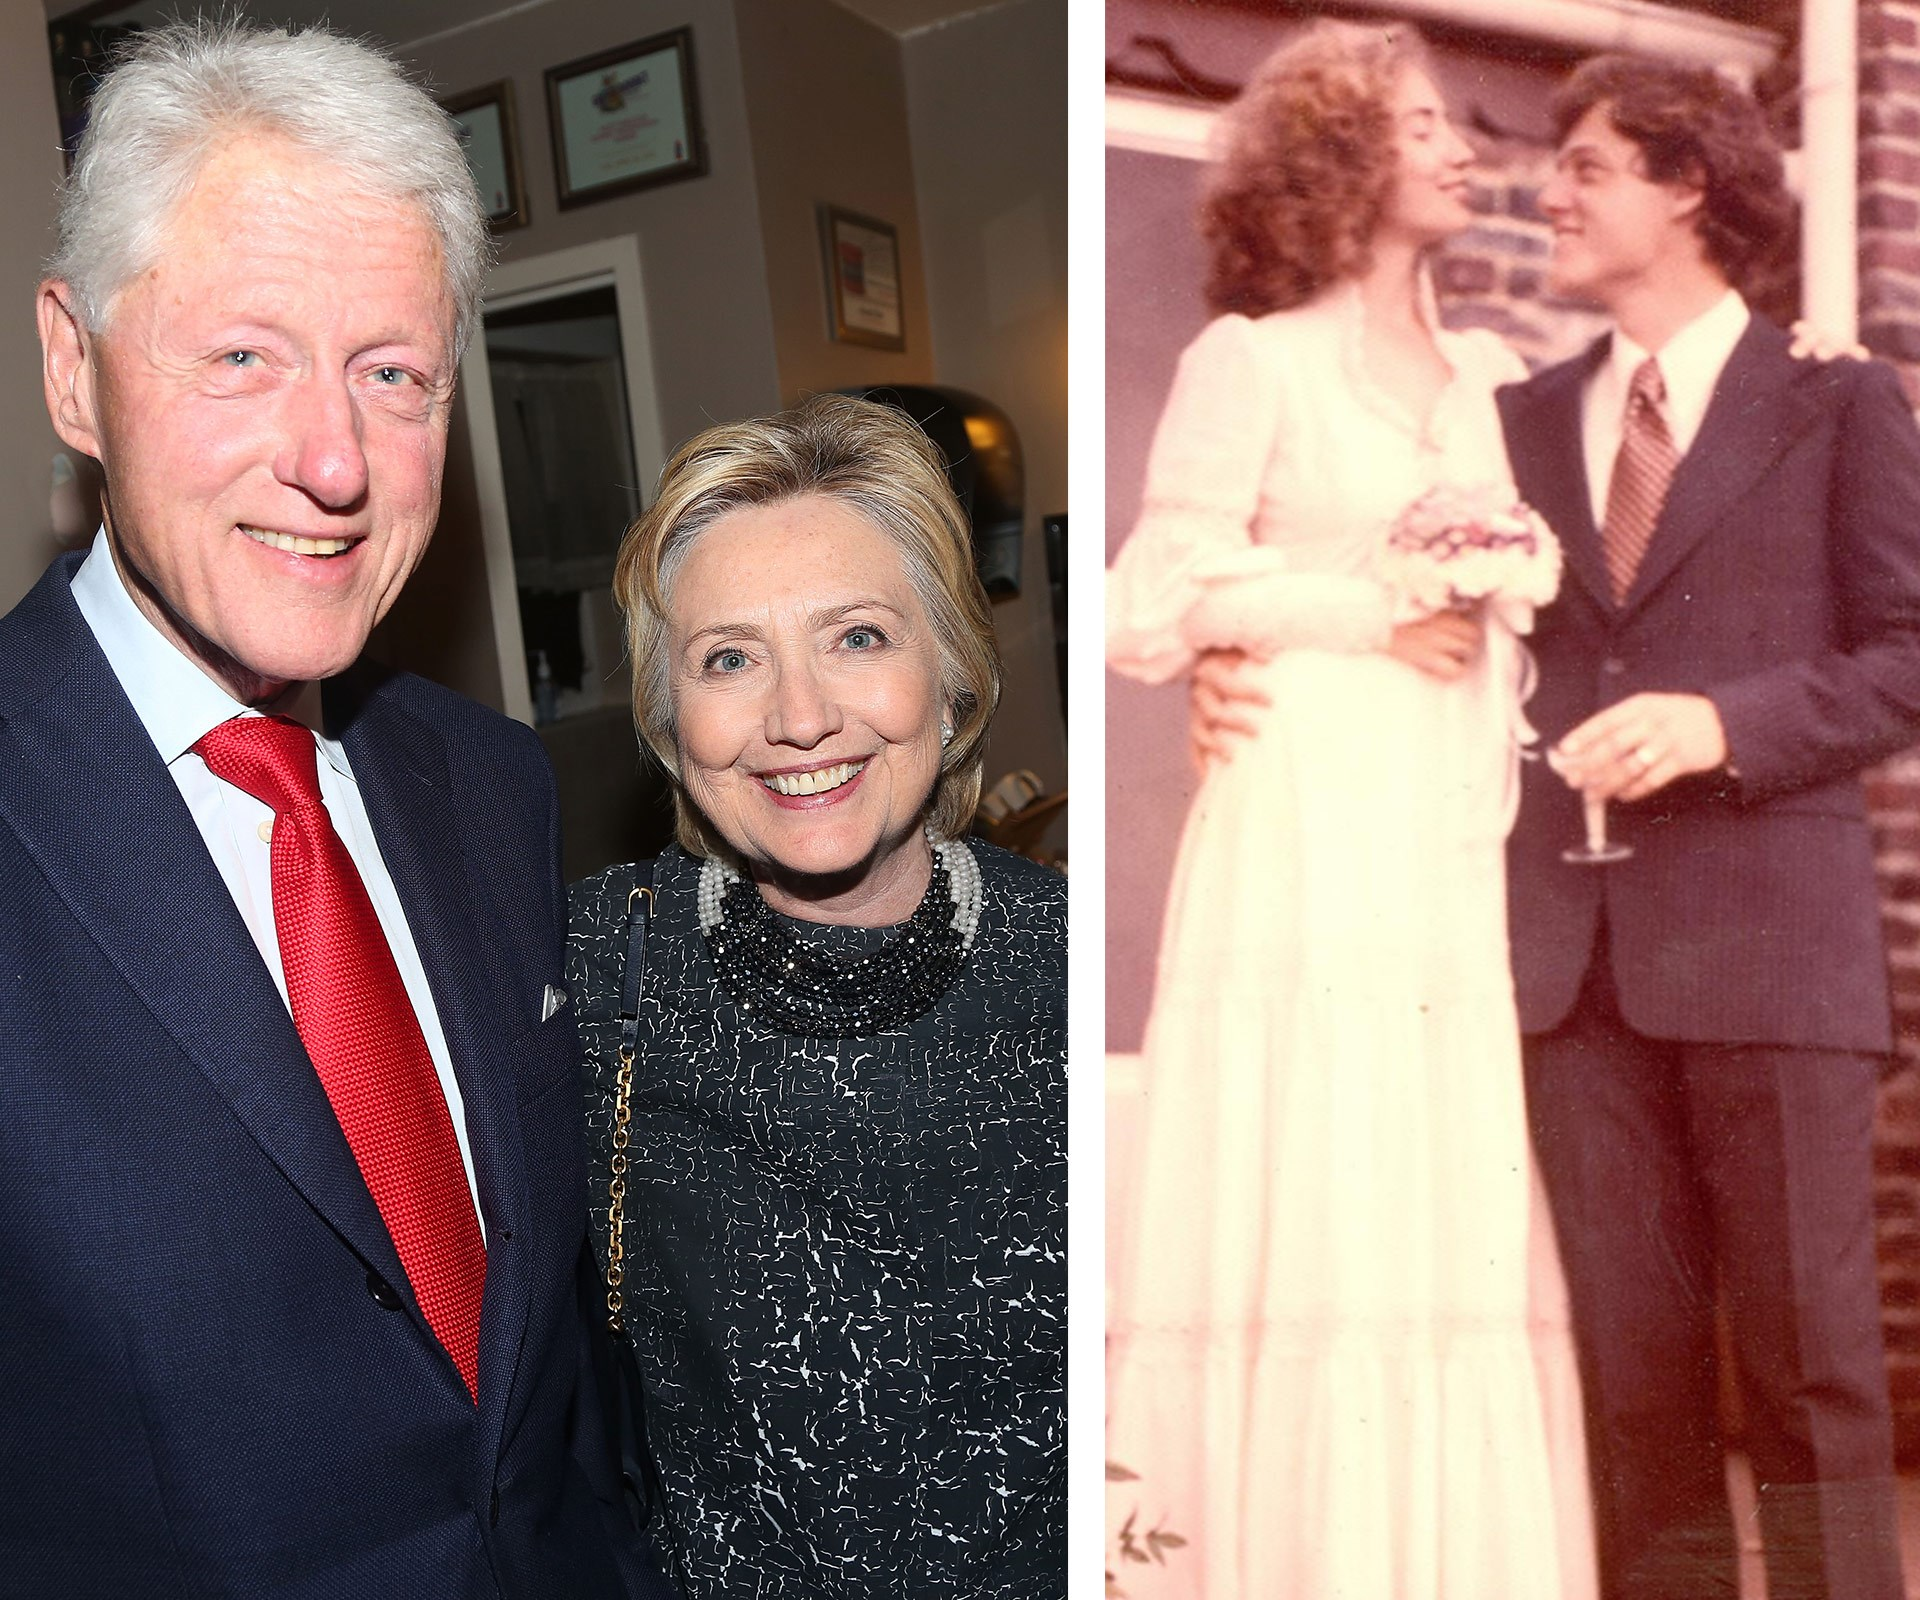 """Hillary Clinton has taken to Instagram with a sweet message for her husband Bill on his 70th birthday. """"Happy birthday, Bill!"""" she penned beside a vintage shot from their 1975 wedding."""